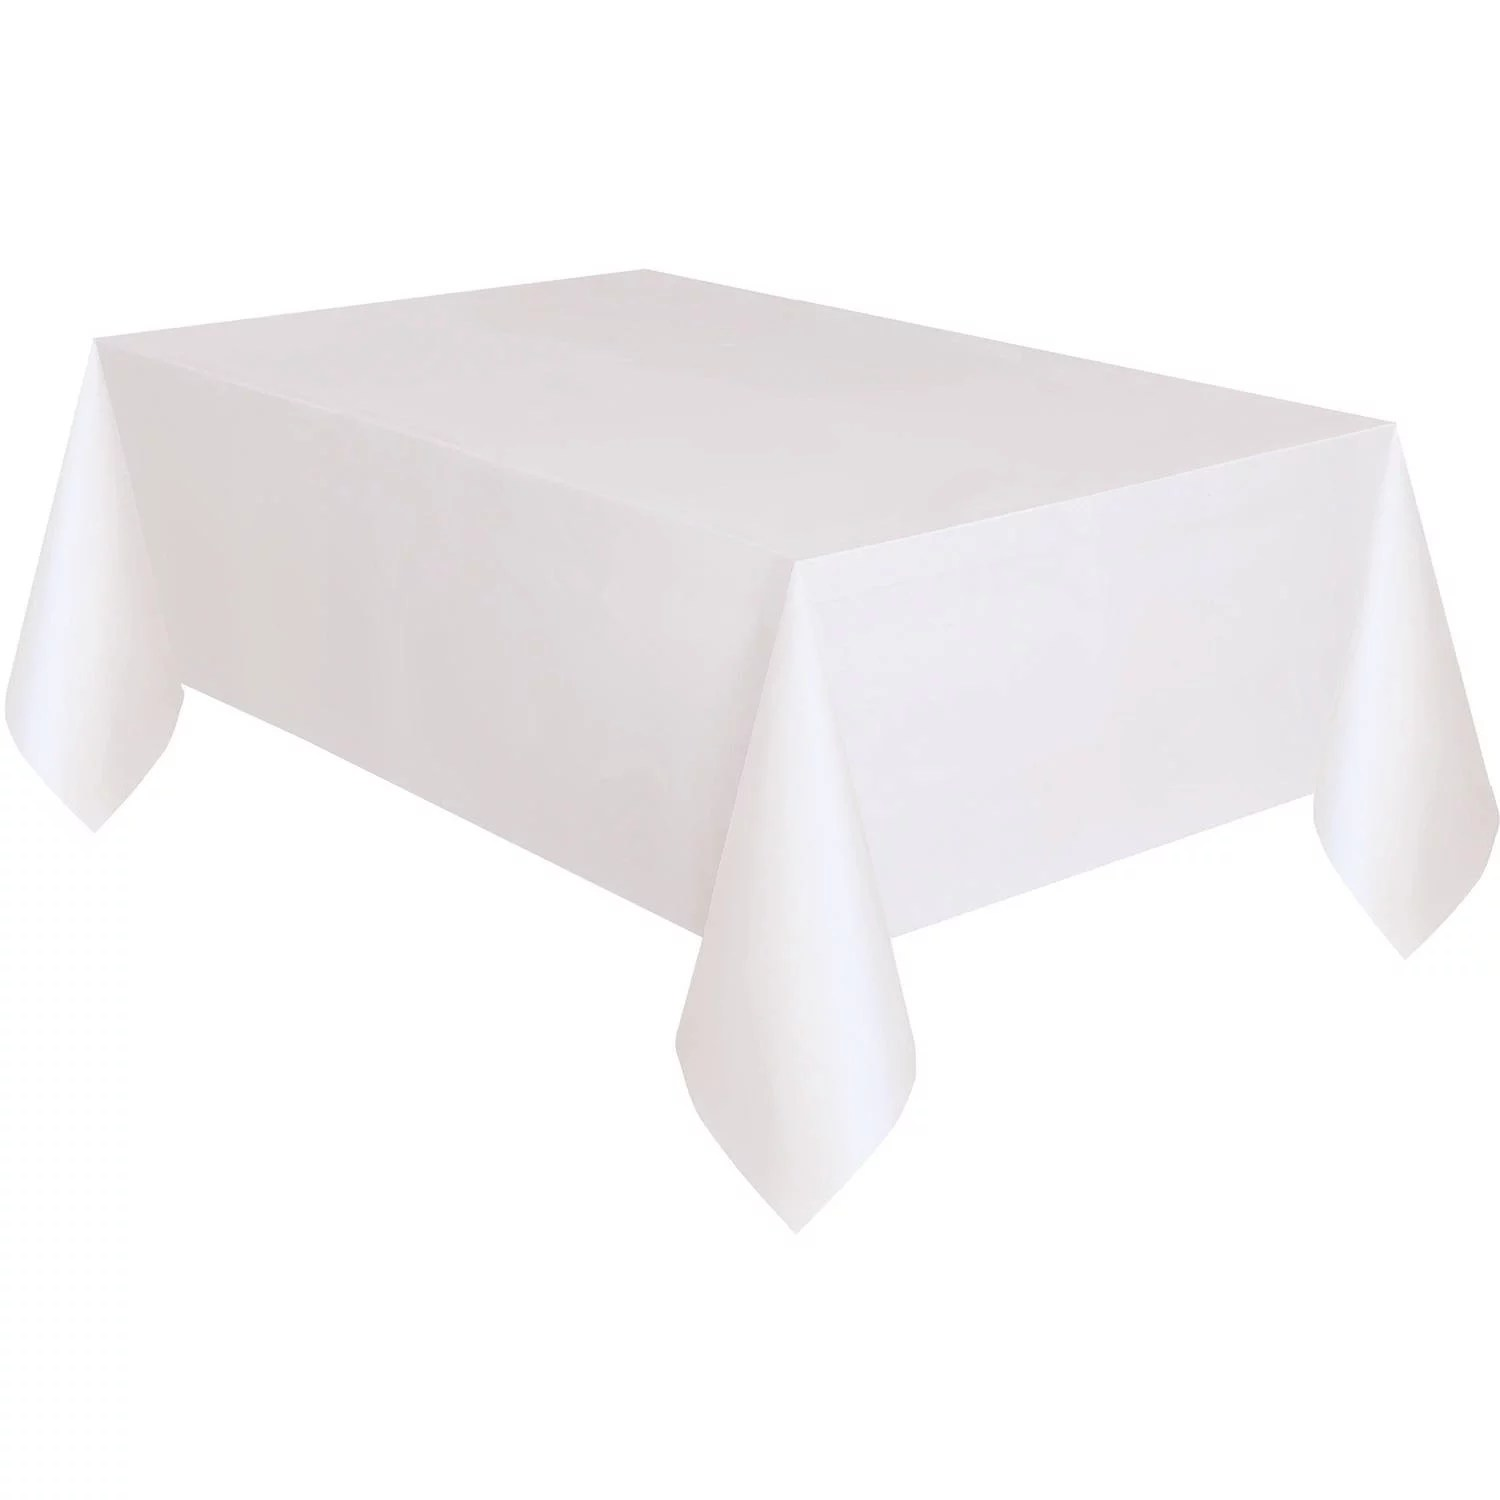 Kunststoff Tischdecke White Plastic Party Tablecloth, 108 X 54in - Walmart.com